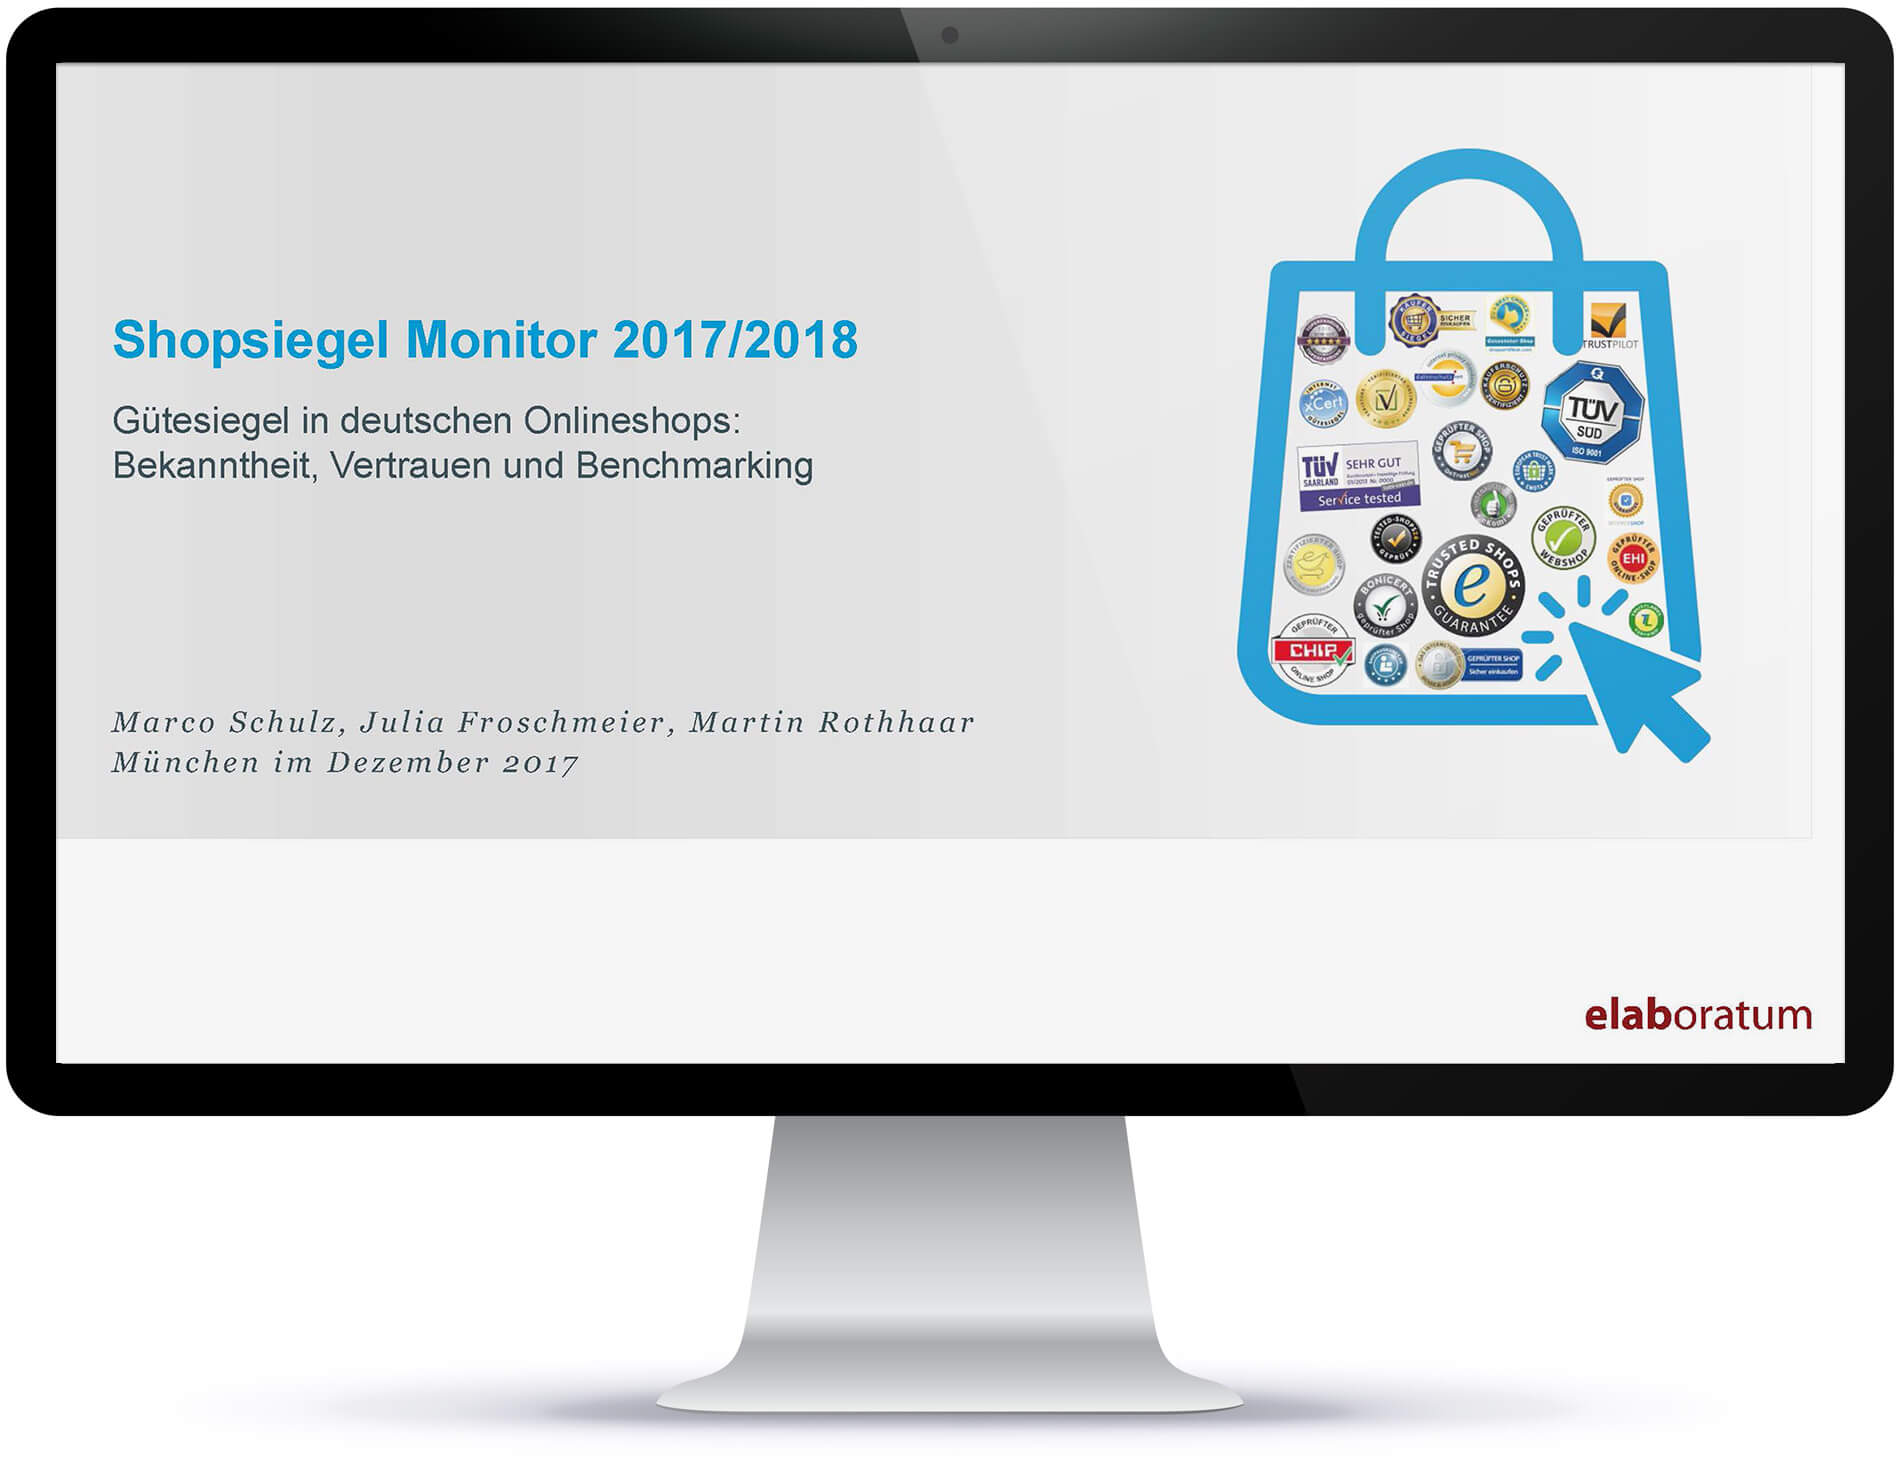 Shopsiegel-Monitor 2017/2018